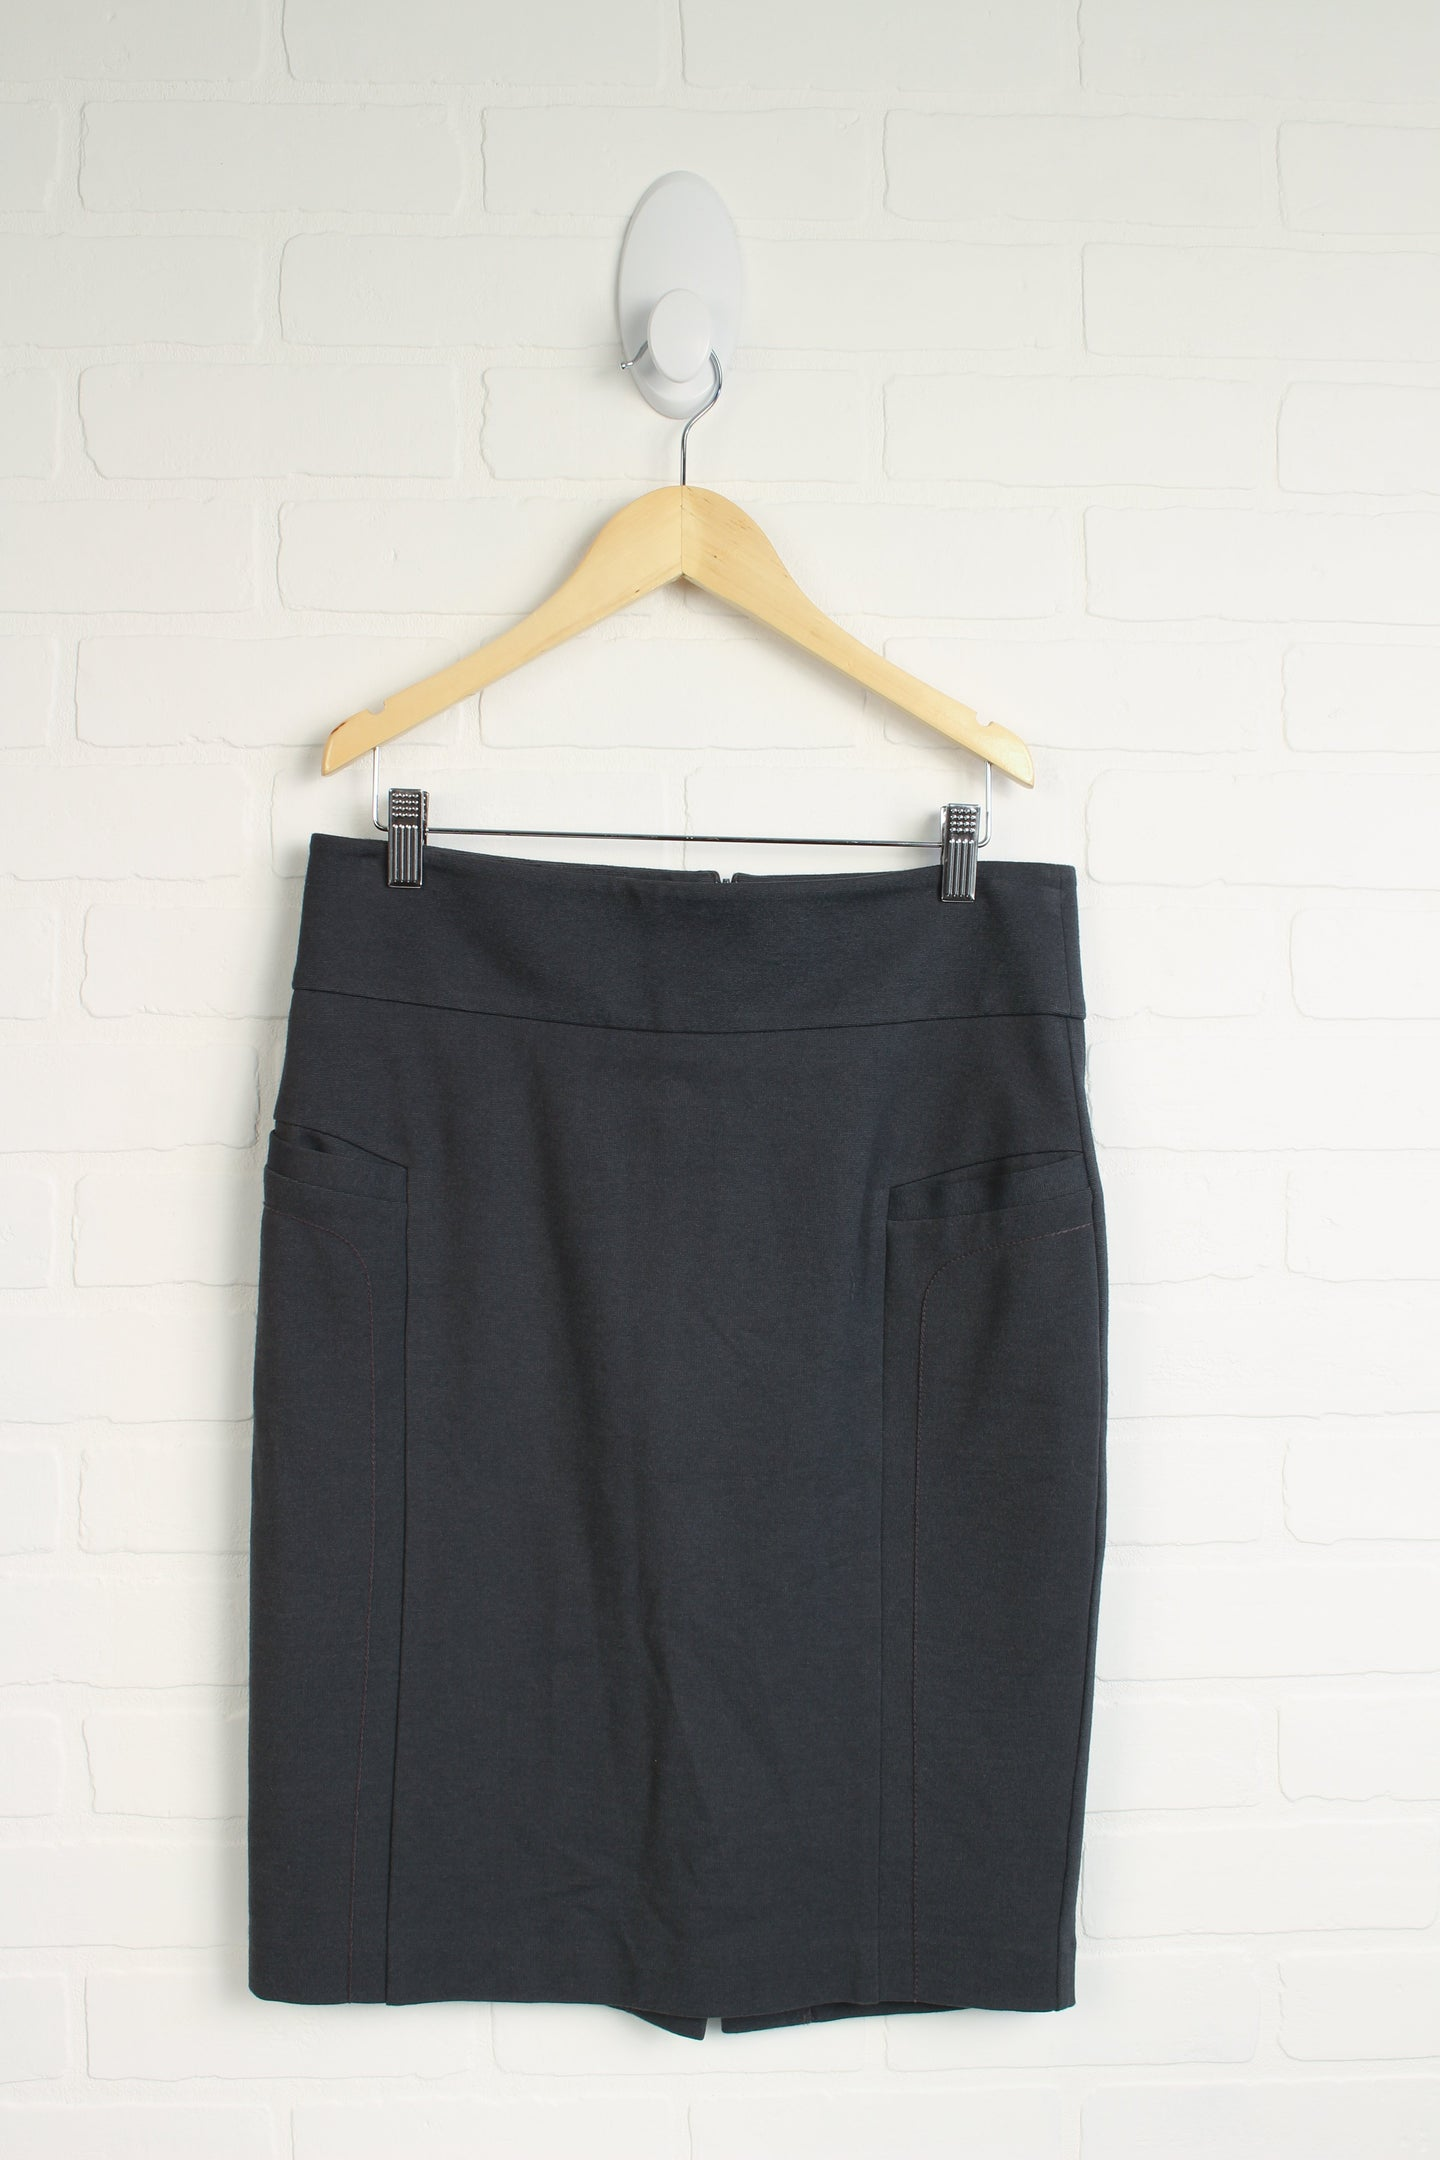 Grey Pencil Skirt with Pockets (Women's Size 38/8)